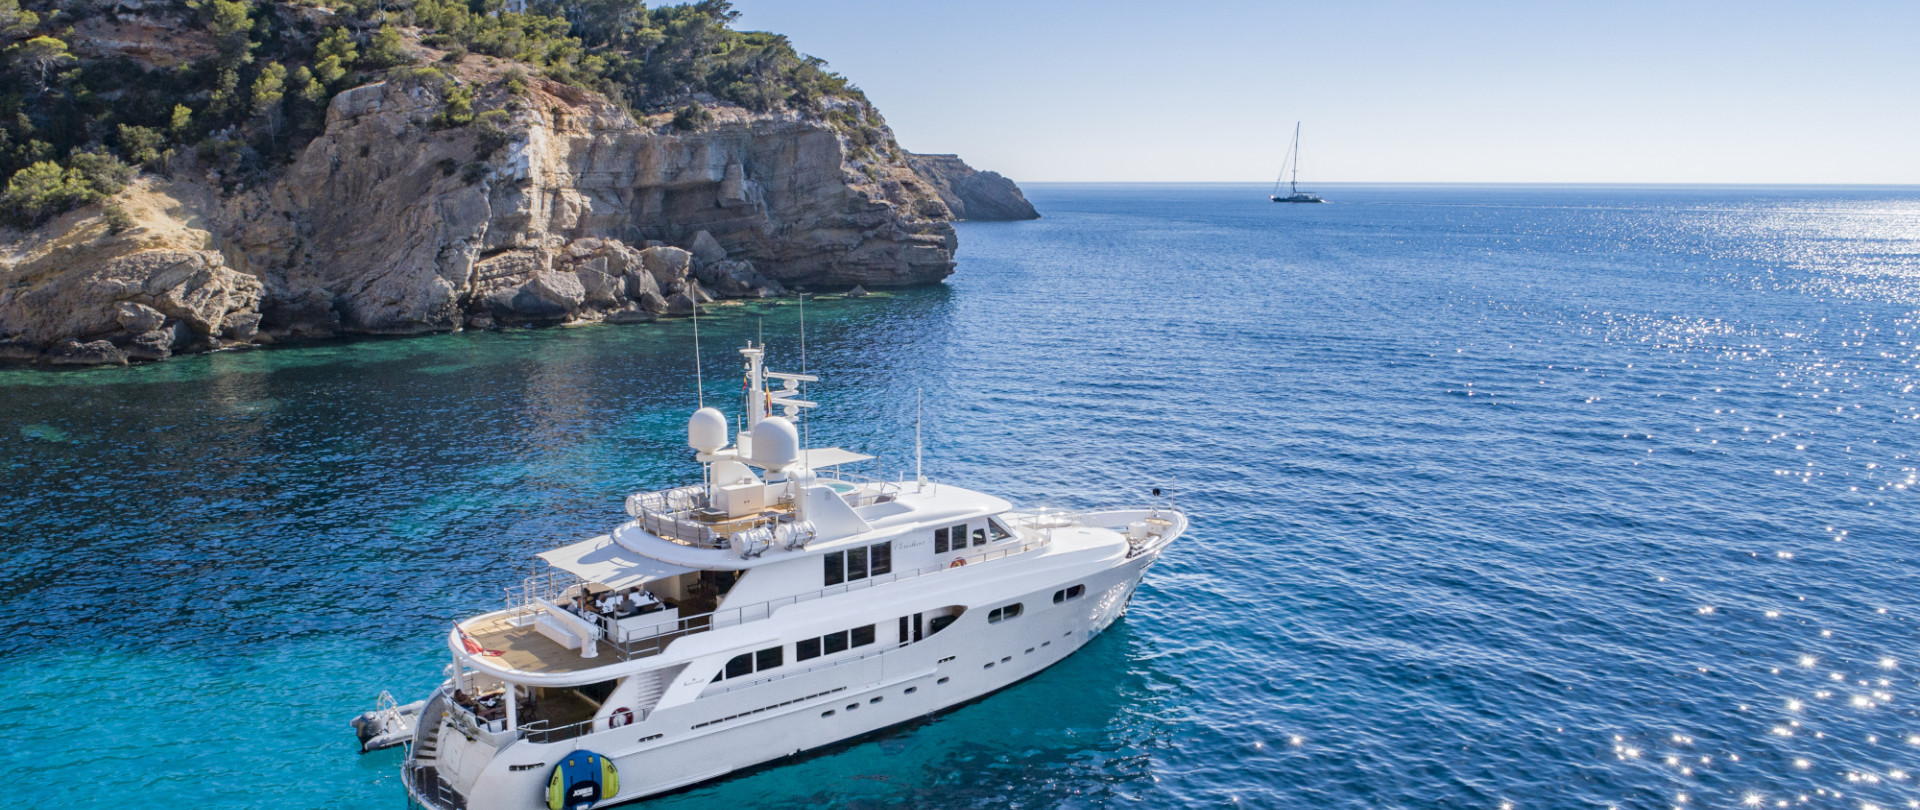 Charter Christina G in the South of Italy next summer photo 1